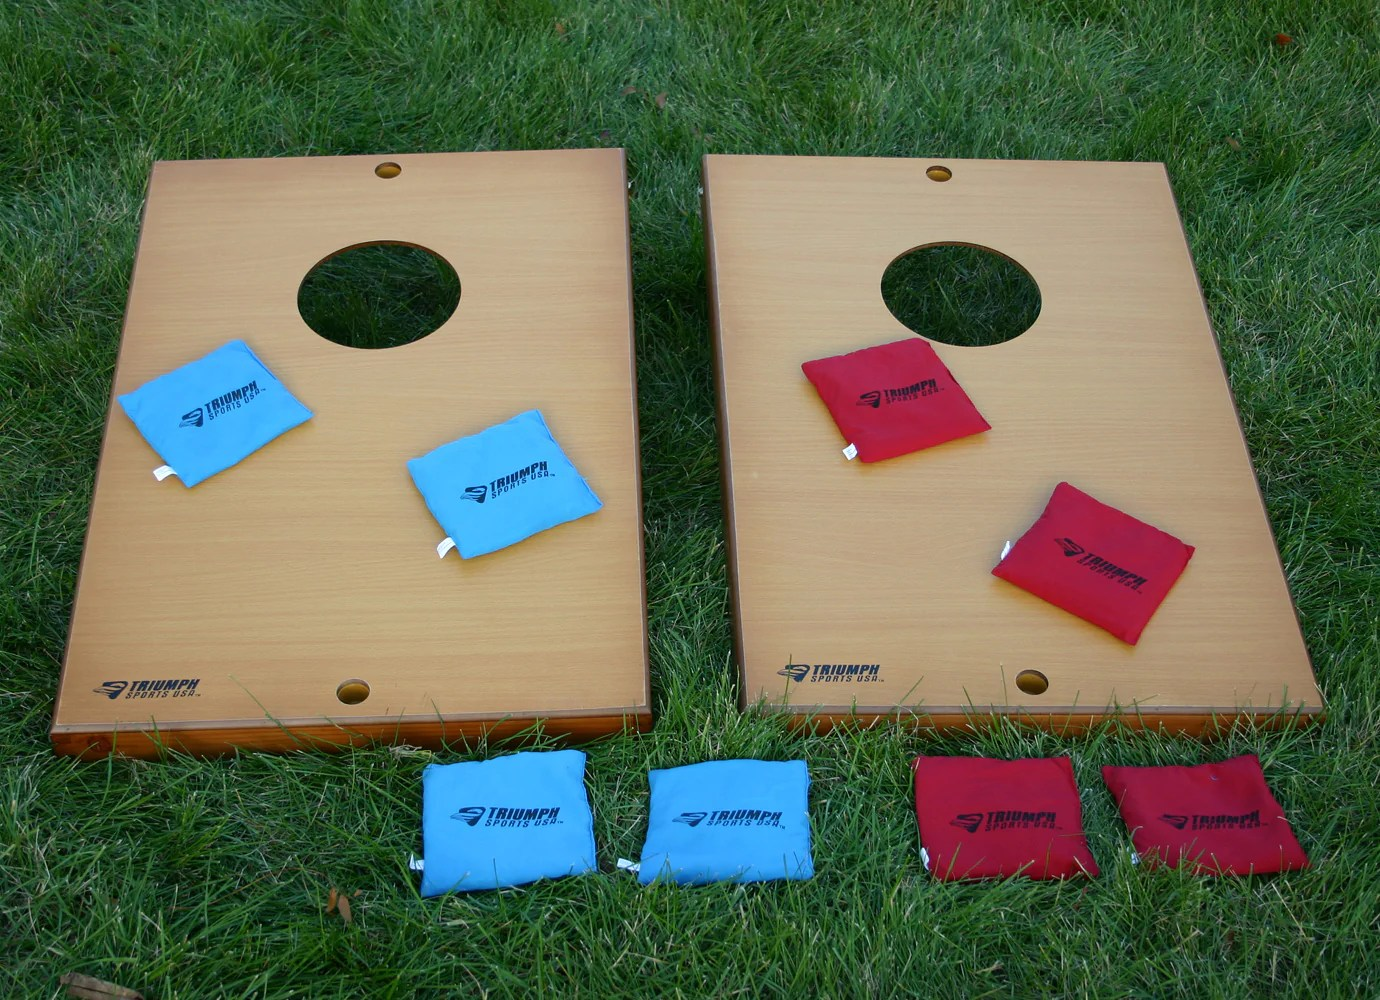 Enjoyable 20 Sportcraft Washer Toss Pictures And Ideas On Stem Gmtry Best Dining Table And Chair Ideas Images Gmtryco